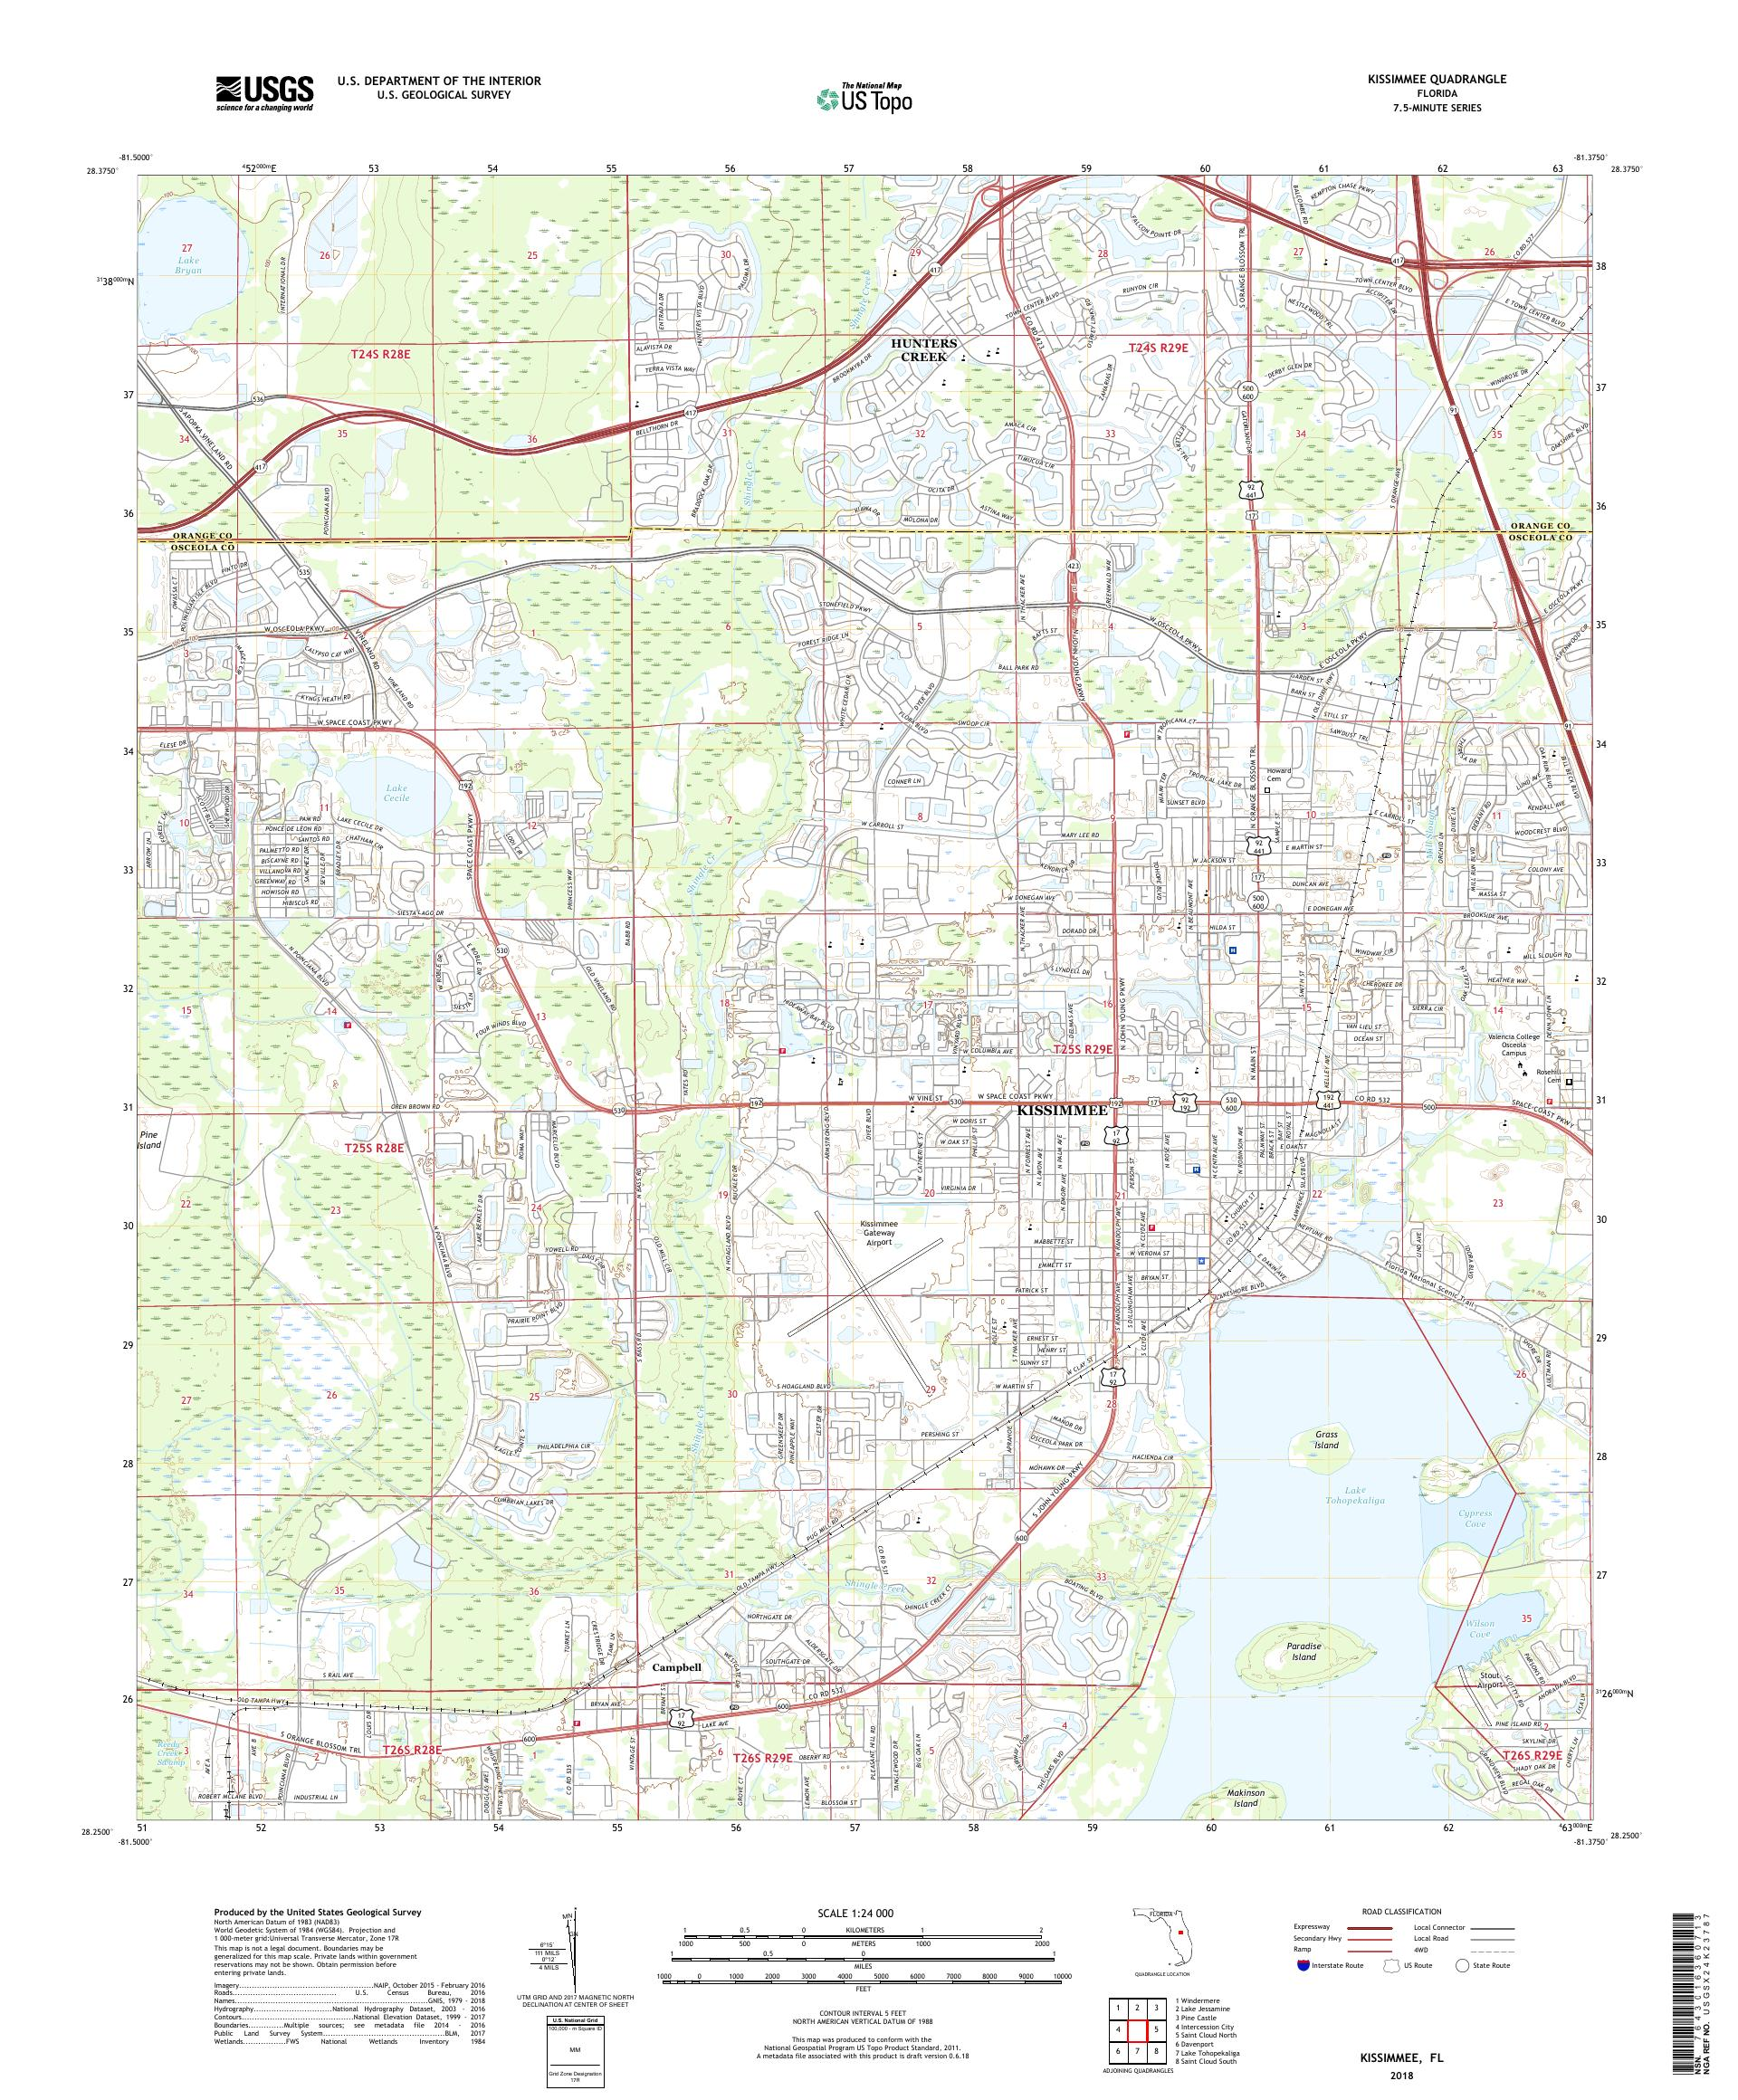 MyTopo Kissimmee, Florida USGS Quad Topo Map on map valrico fl, map monticello fl, map clewiston fl, map escambia county fl, map lauderhill fl, map weston fl, map oakland park fl, map of kissimmee 192, map debary fl, map lee county fl, map orlando fl, map apalachicola fl, map santa rosa county fl, map san antonio fl, map of kissimmee and surrounding areas, map st. petersburg fl, map dundee fl, map winter park fl, map florida fl, map christmas fl,